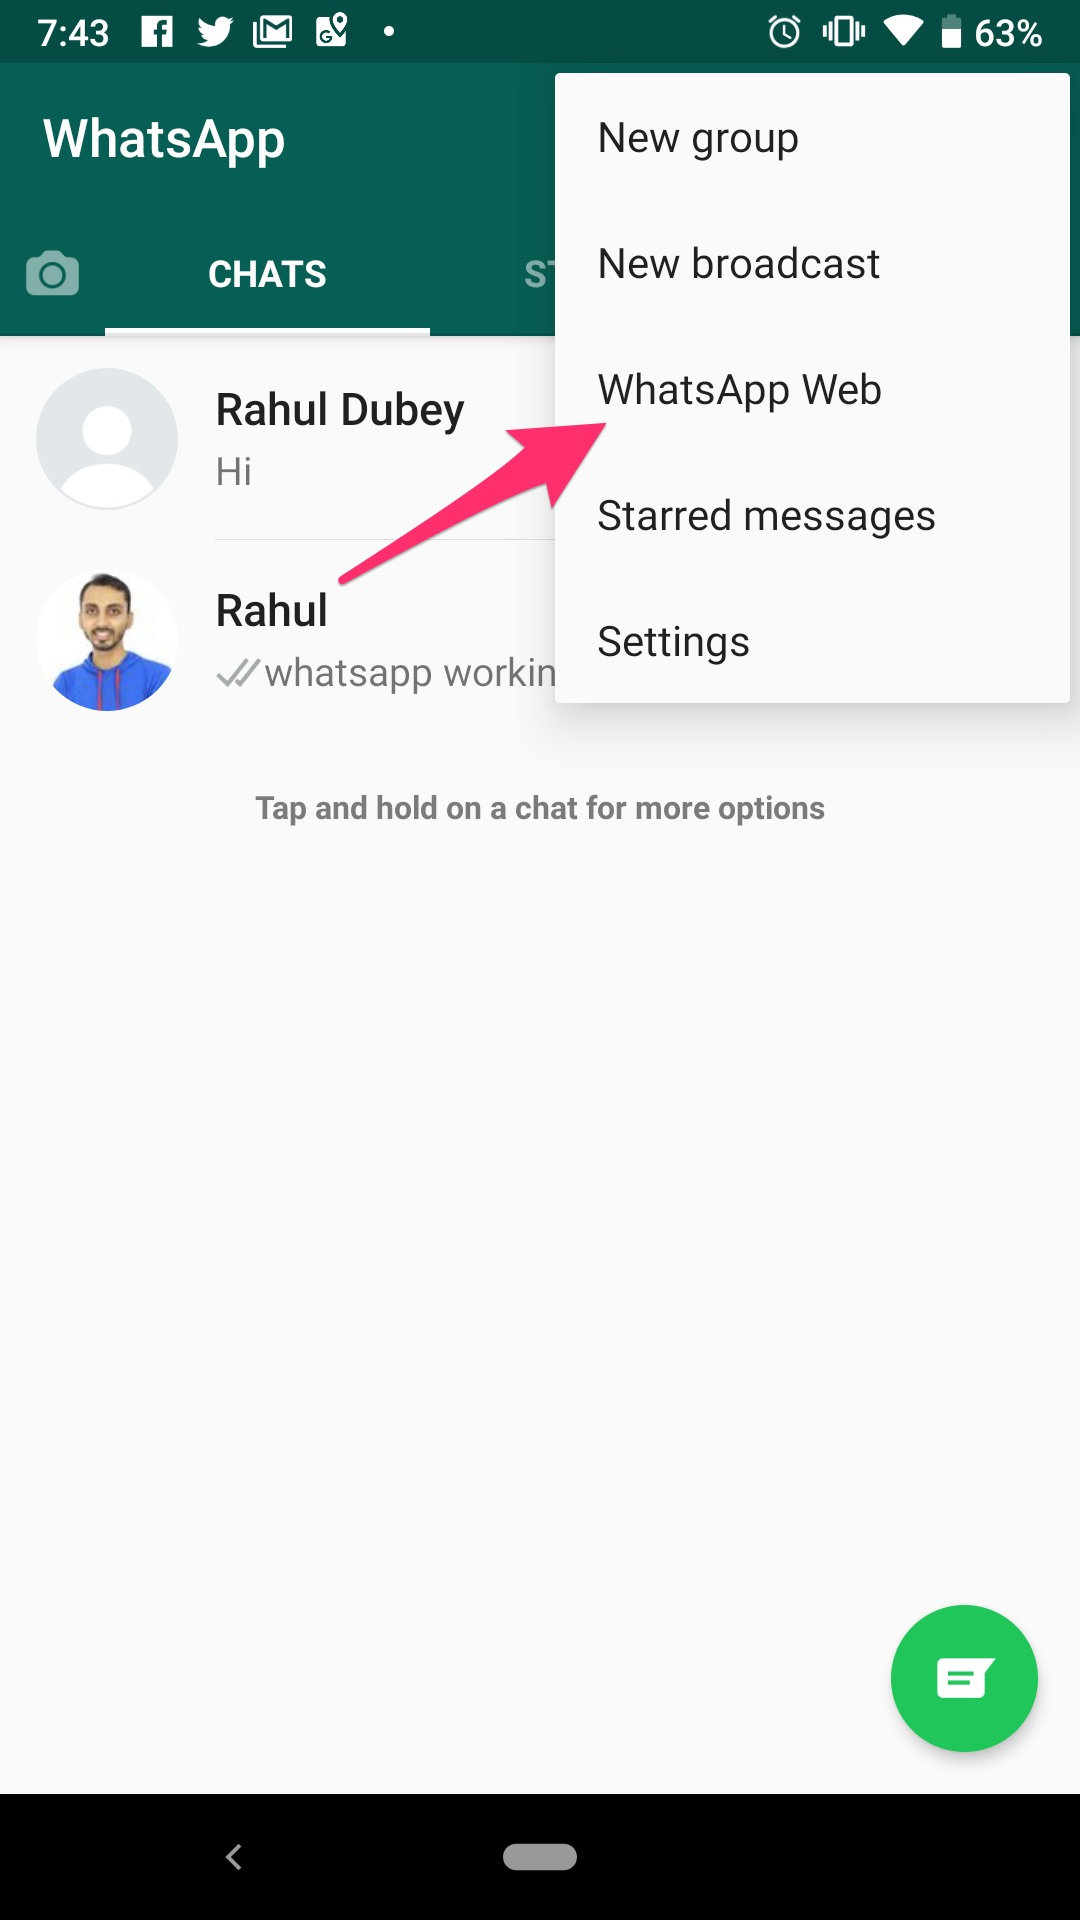 How to Install WhatsApp on iPad without Jailbreak? 2020